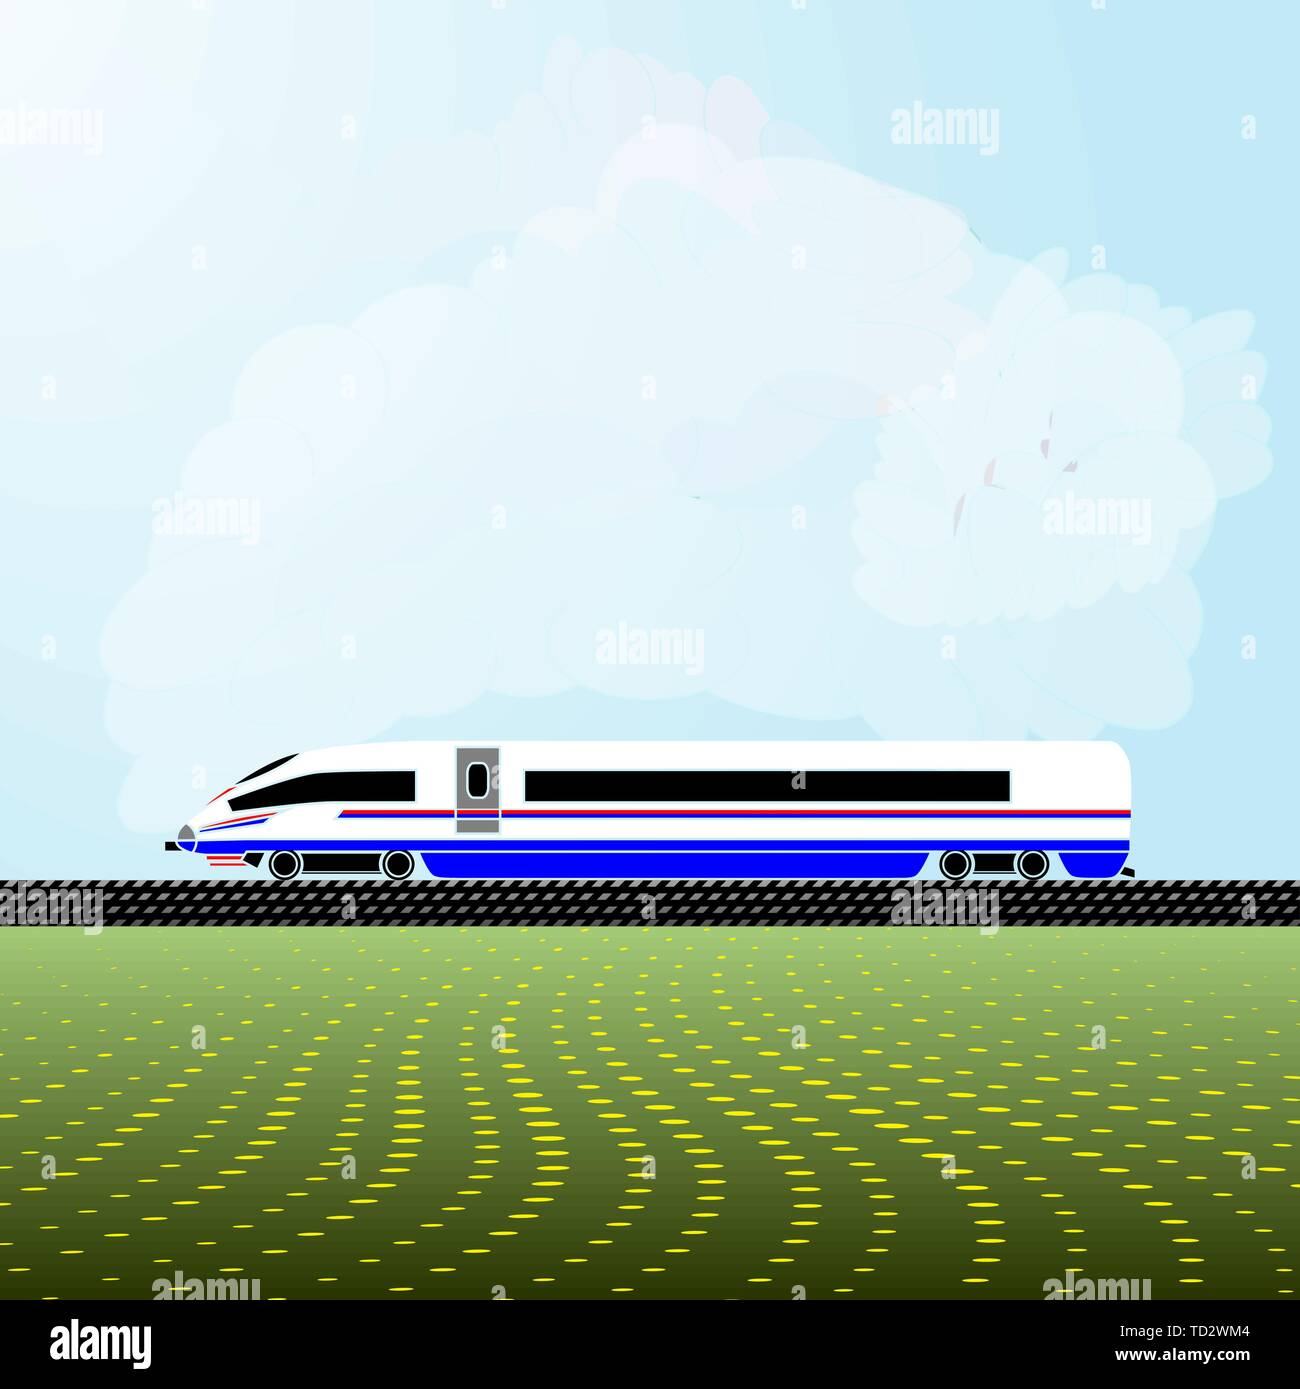 Realistic vector illustration of the locomotive of a modern high-speed train. Background - a light blue sky with white clouds and abstract flowering m - Stock Vector